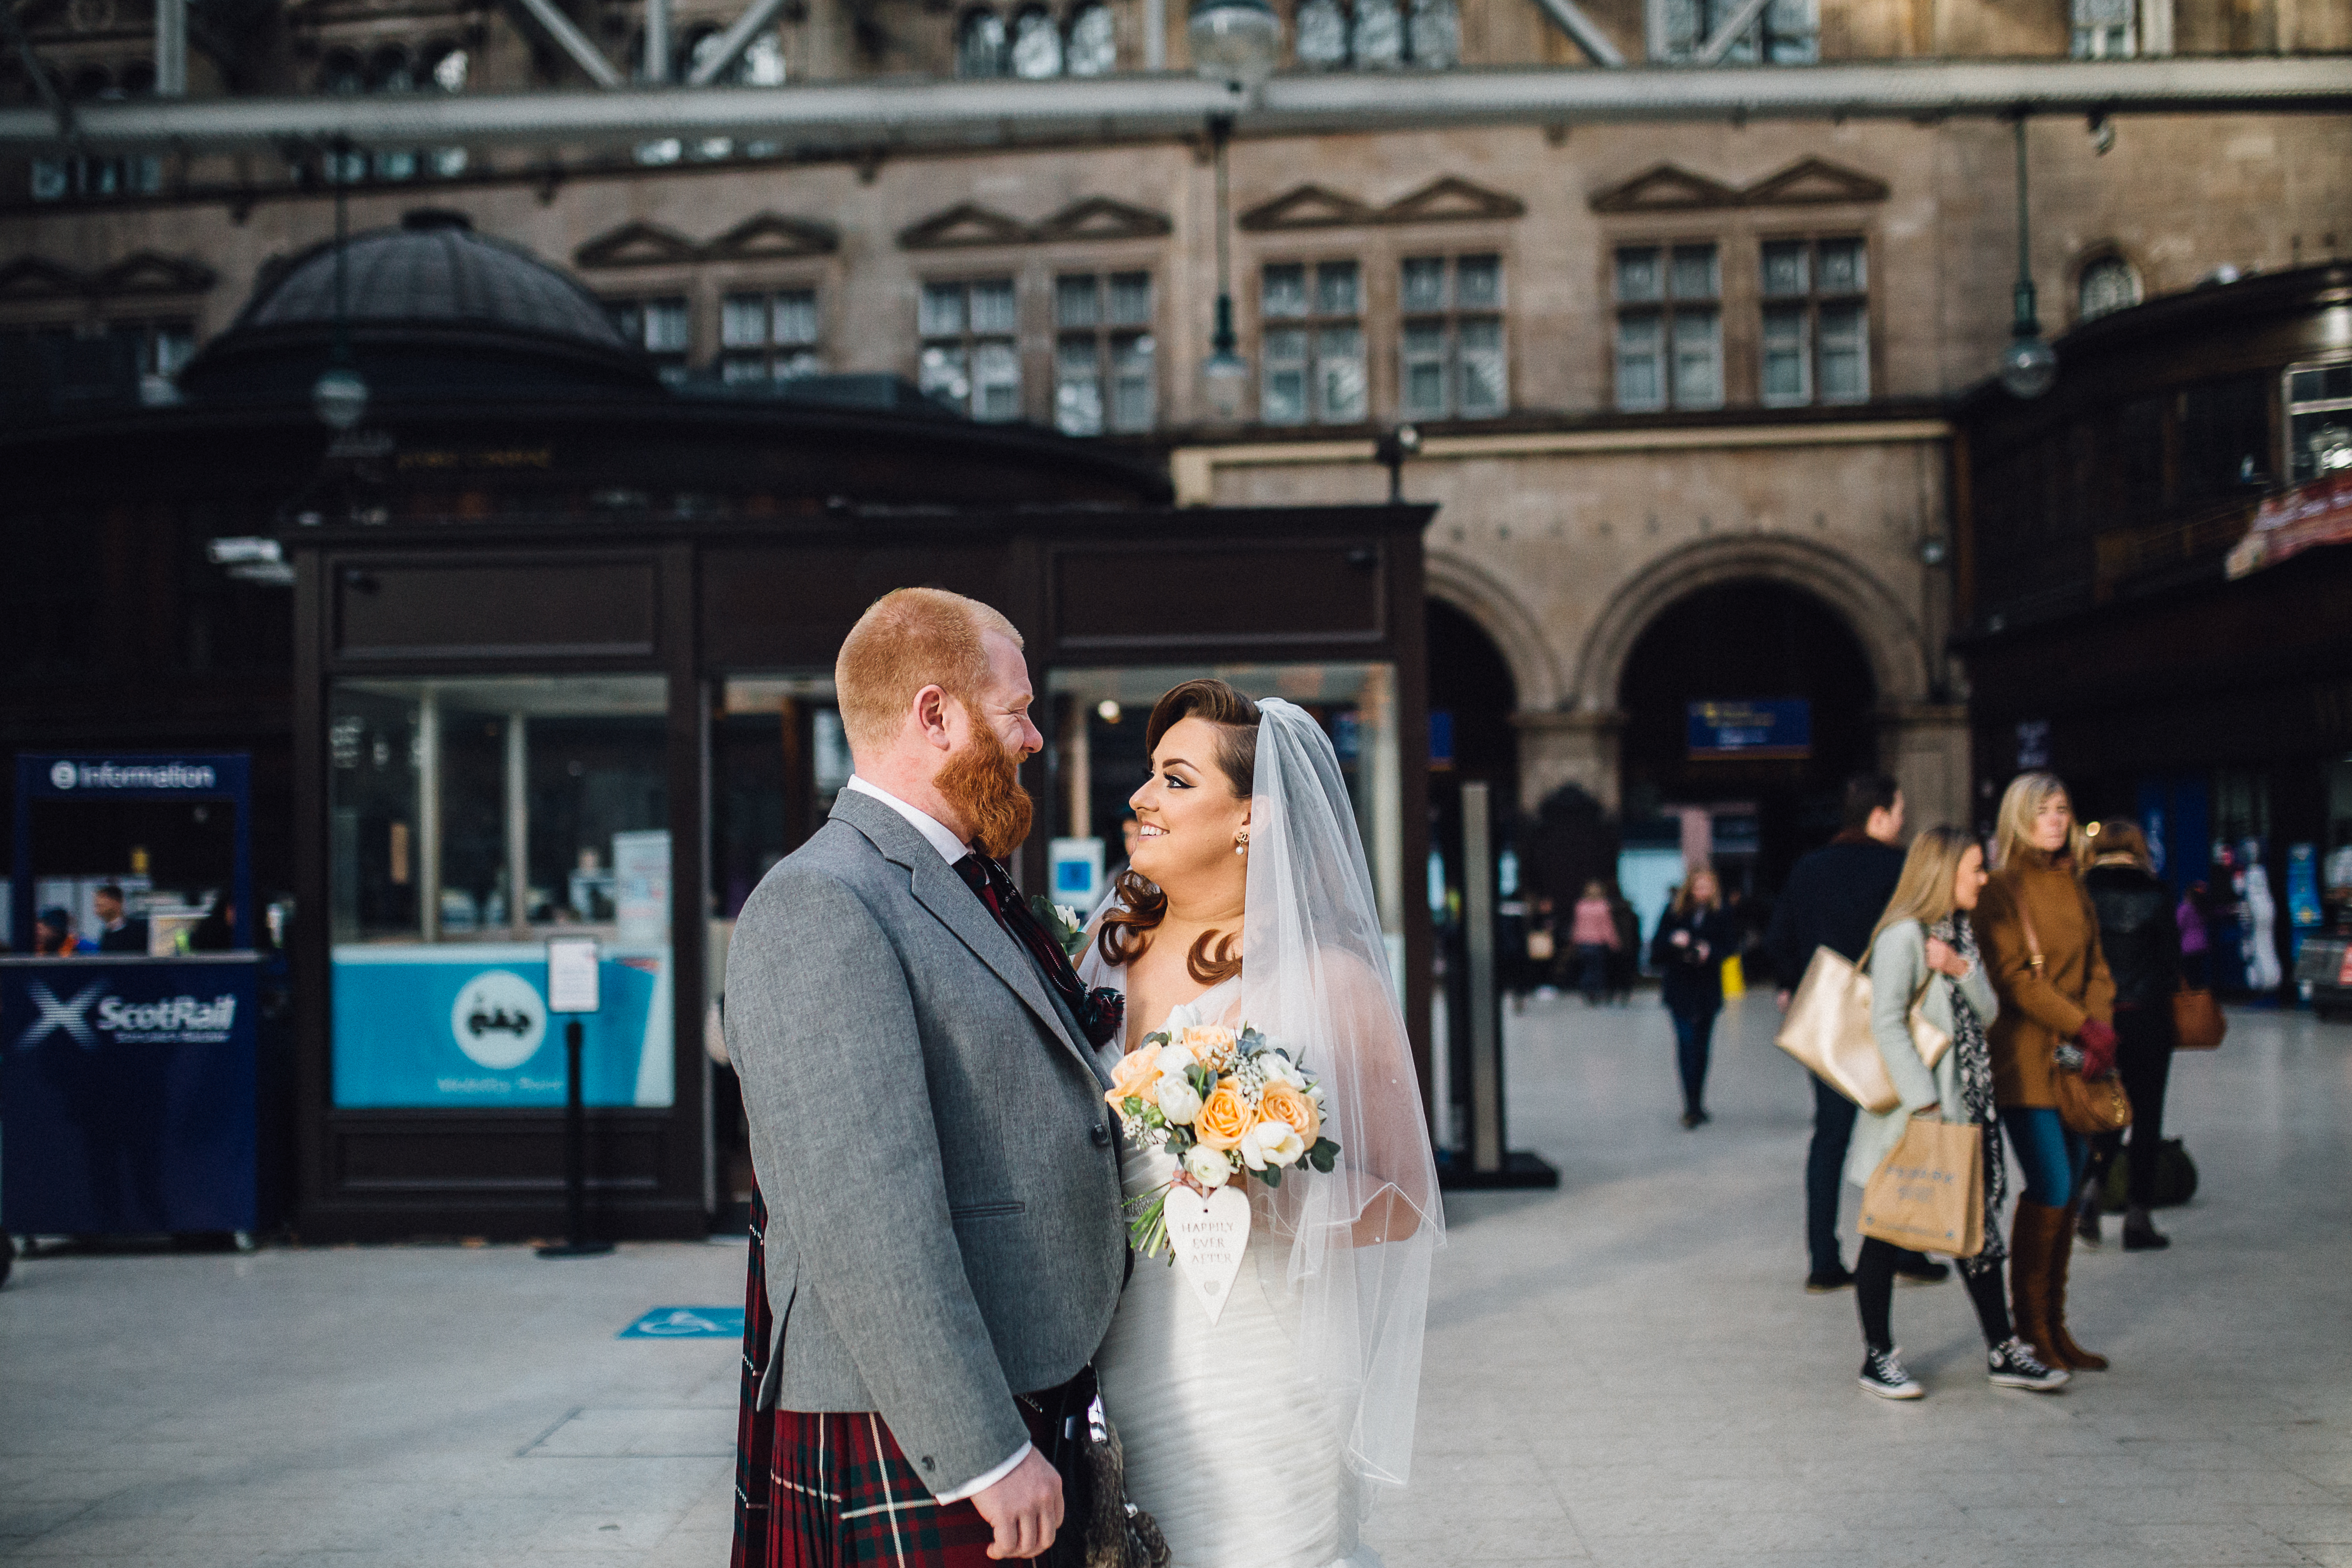 Wedding at Glasgow Central Station